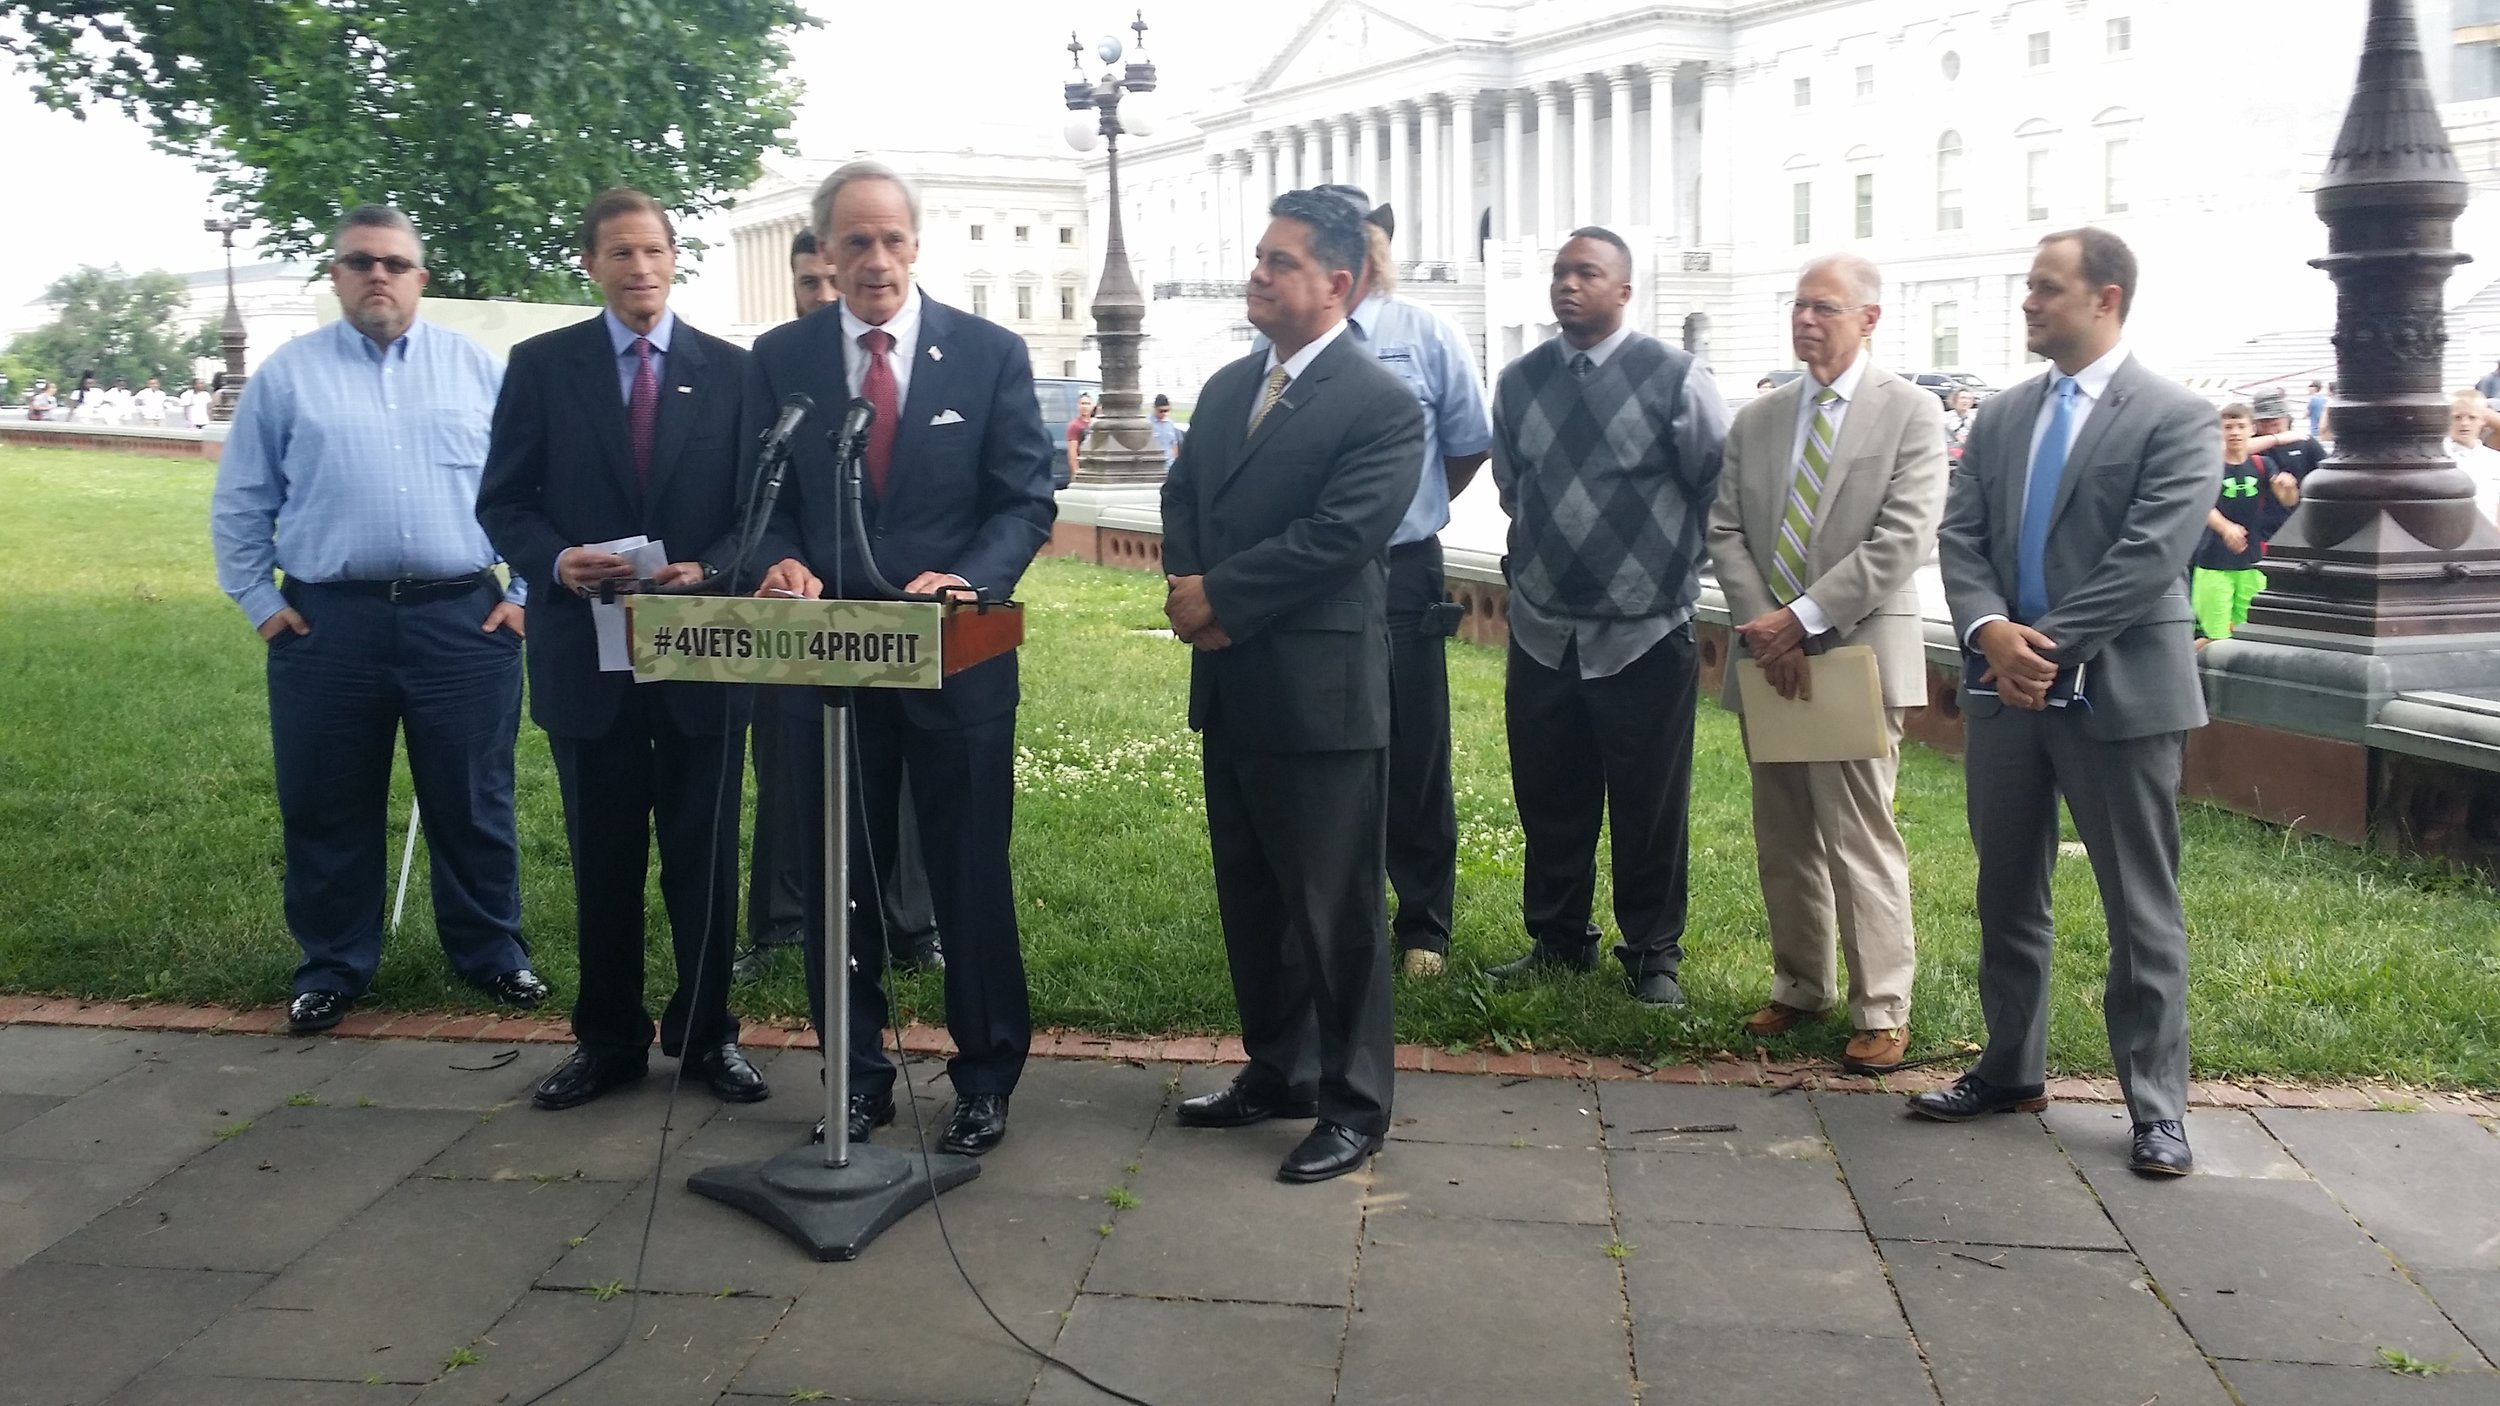 SEN. TOM CARPER & SEN. RICHARD BLUMENTHAL JOIN STUDENT VETERANS, VES, SVA & IAVA FOR A PRESS CONFERENCE ON THE 90/10 LOOPHOLE LEGISLATION, june 2016